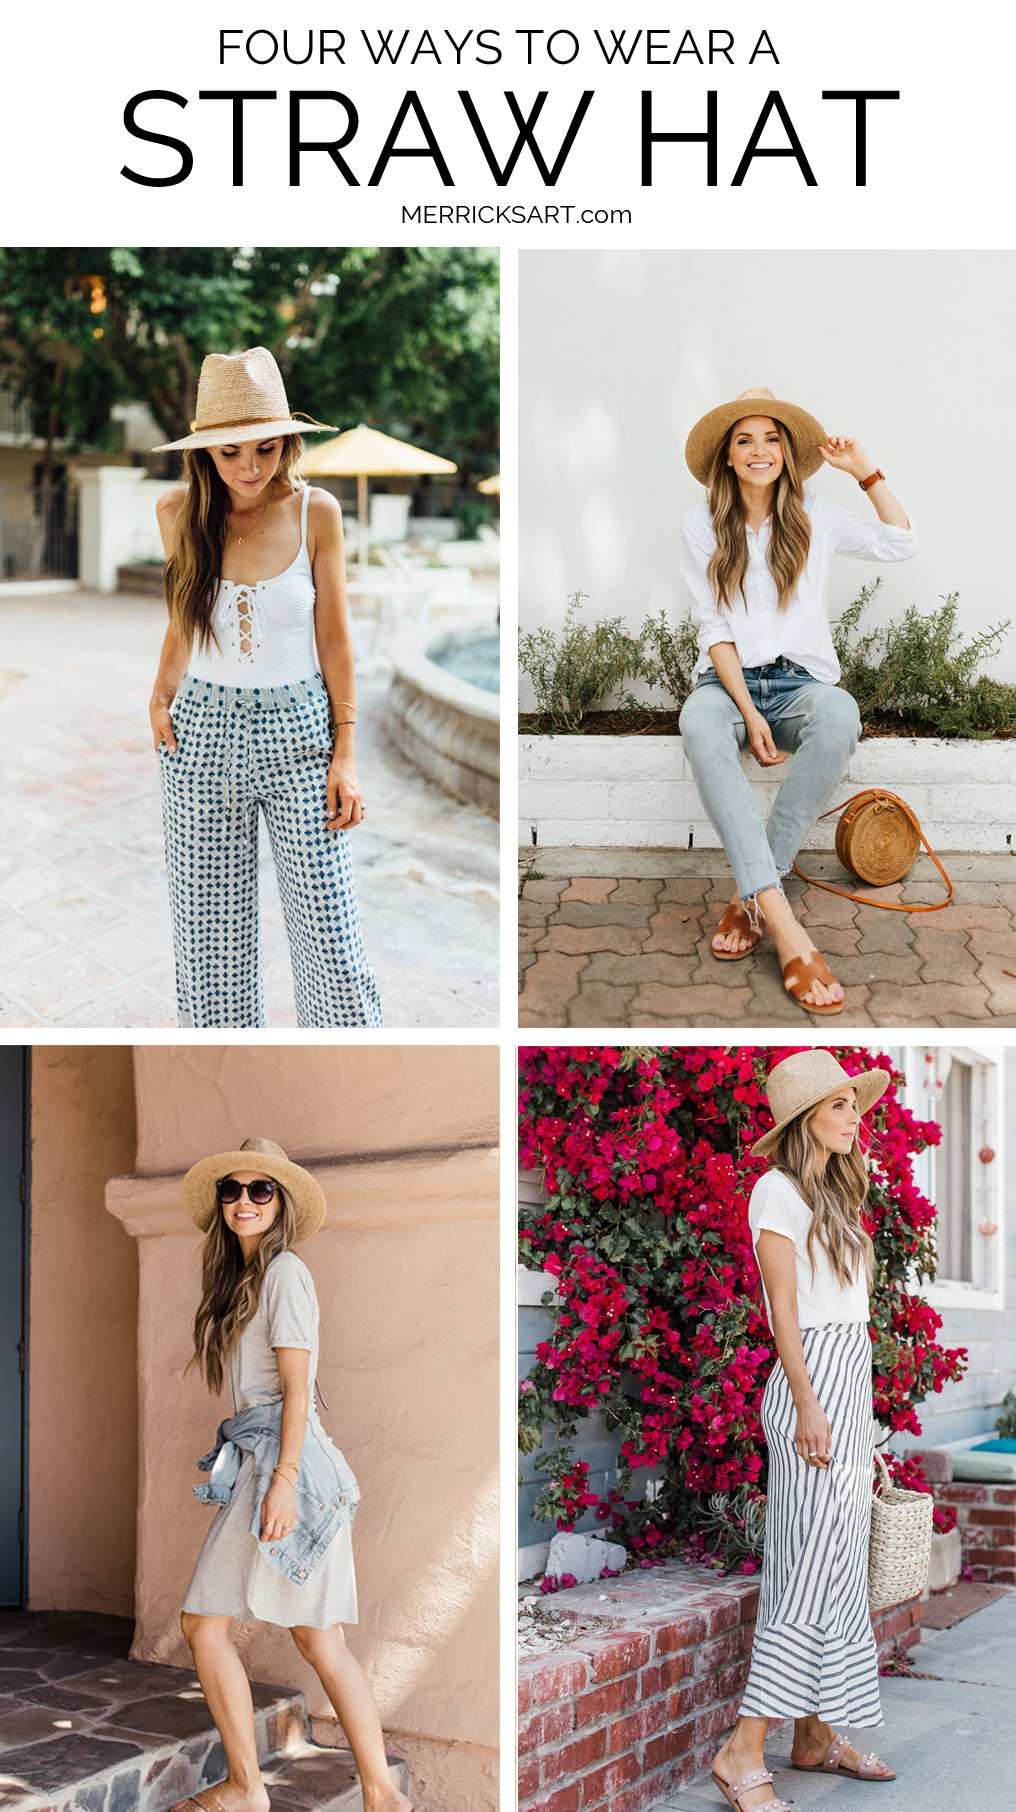 dbf5ca6b Summer Hats: Where to Buy Them, Which ones to Choose, and How to ...